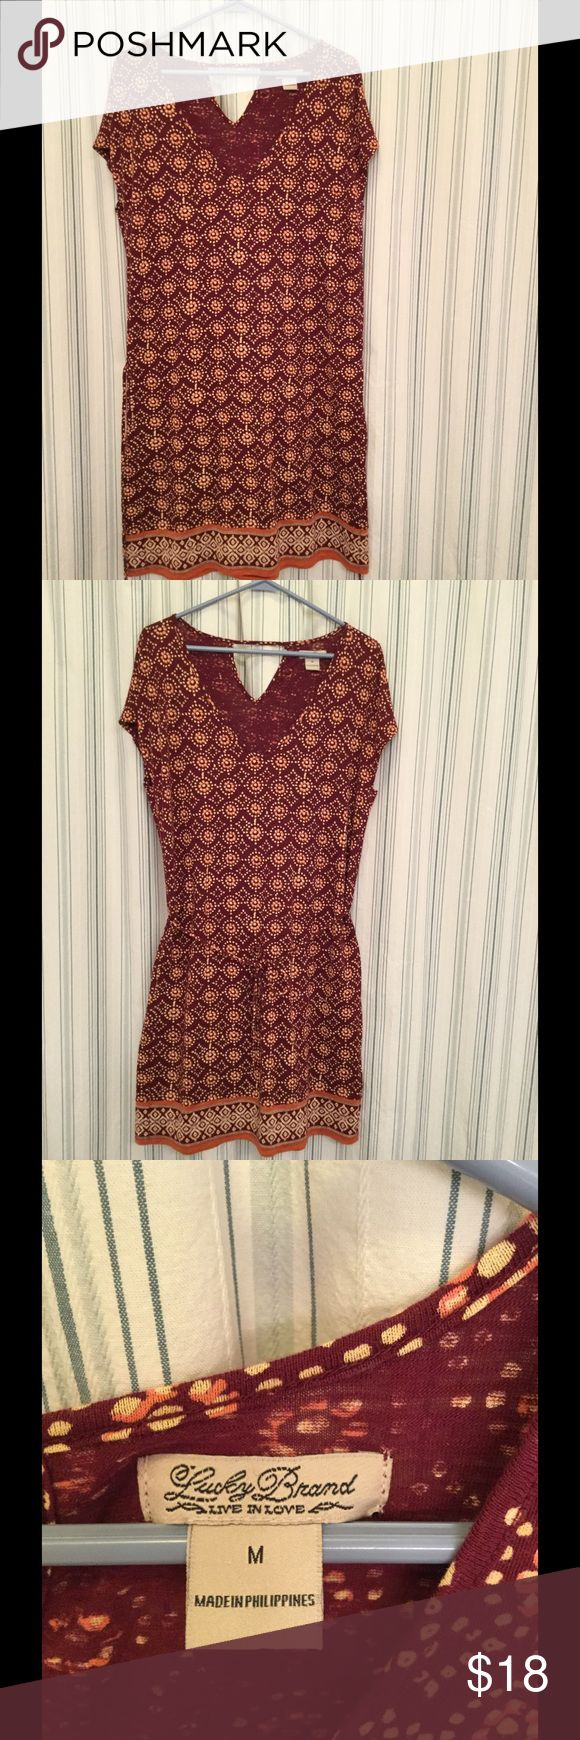 Lucky Brand T shirt Dress Lucky Brand T shirt Dress, purchased from Lucky Outlet, Size M, you can wear with or without belt. It's a big M,  length is 37 in, very comfortable, only worn a few times, great condition Lucky Brand Dresses